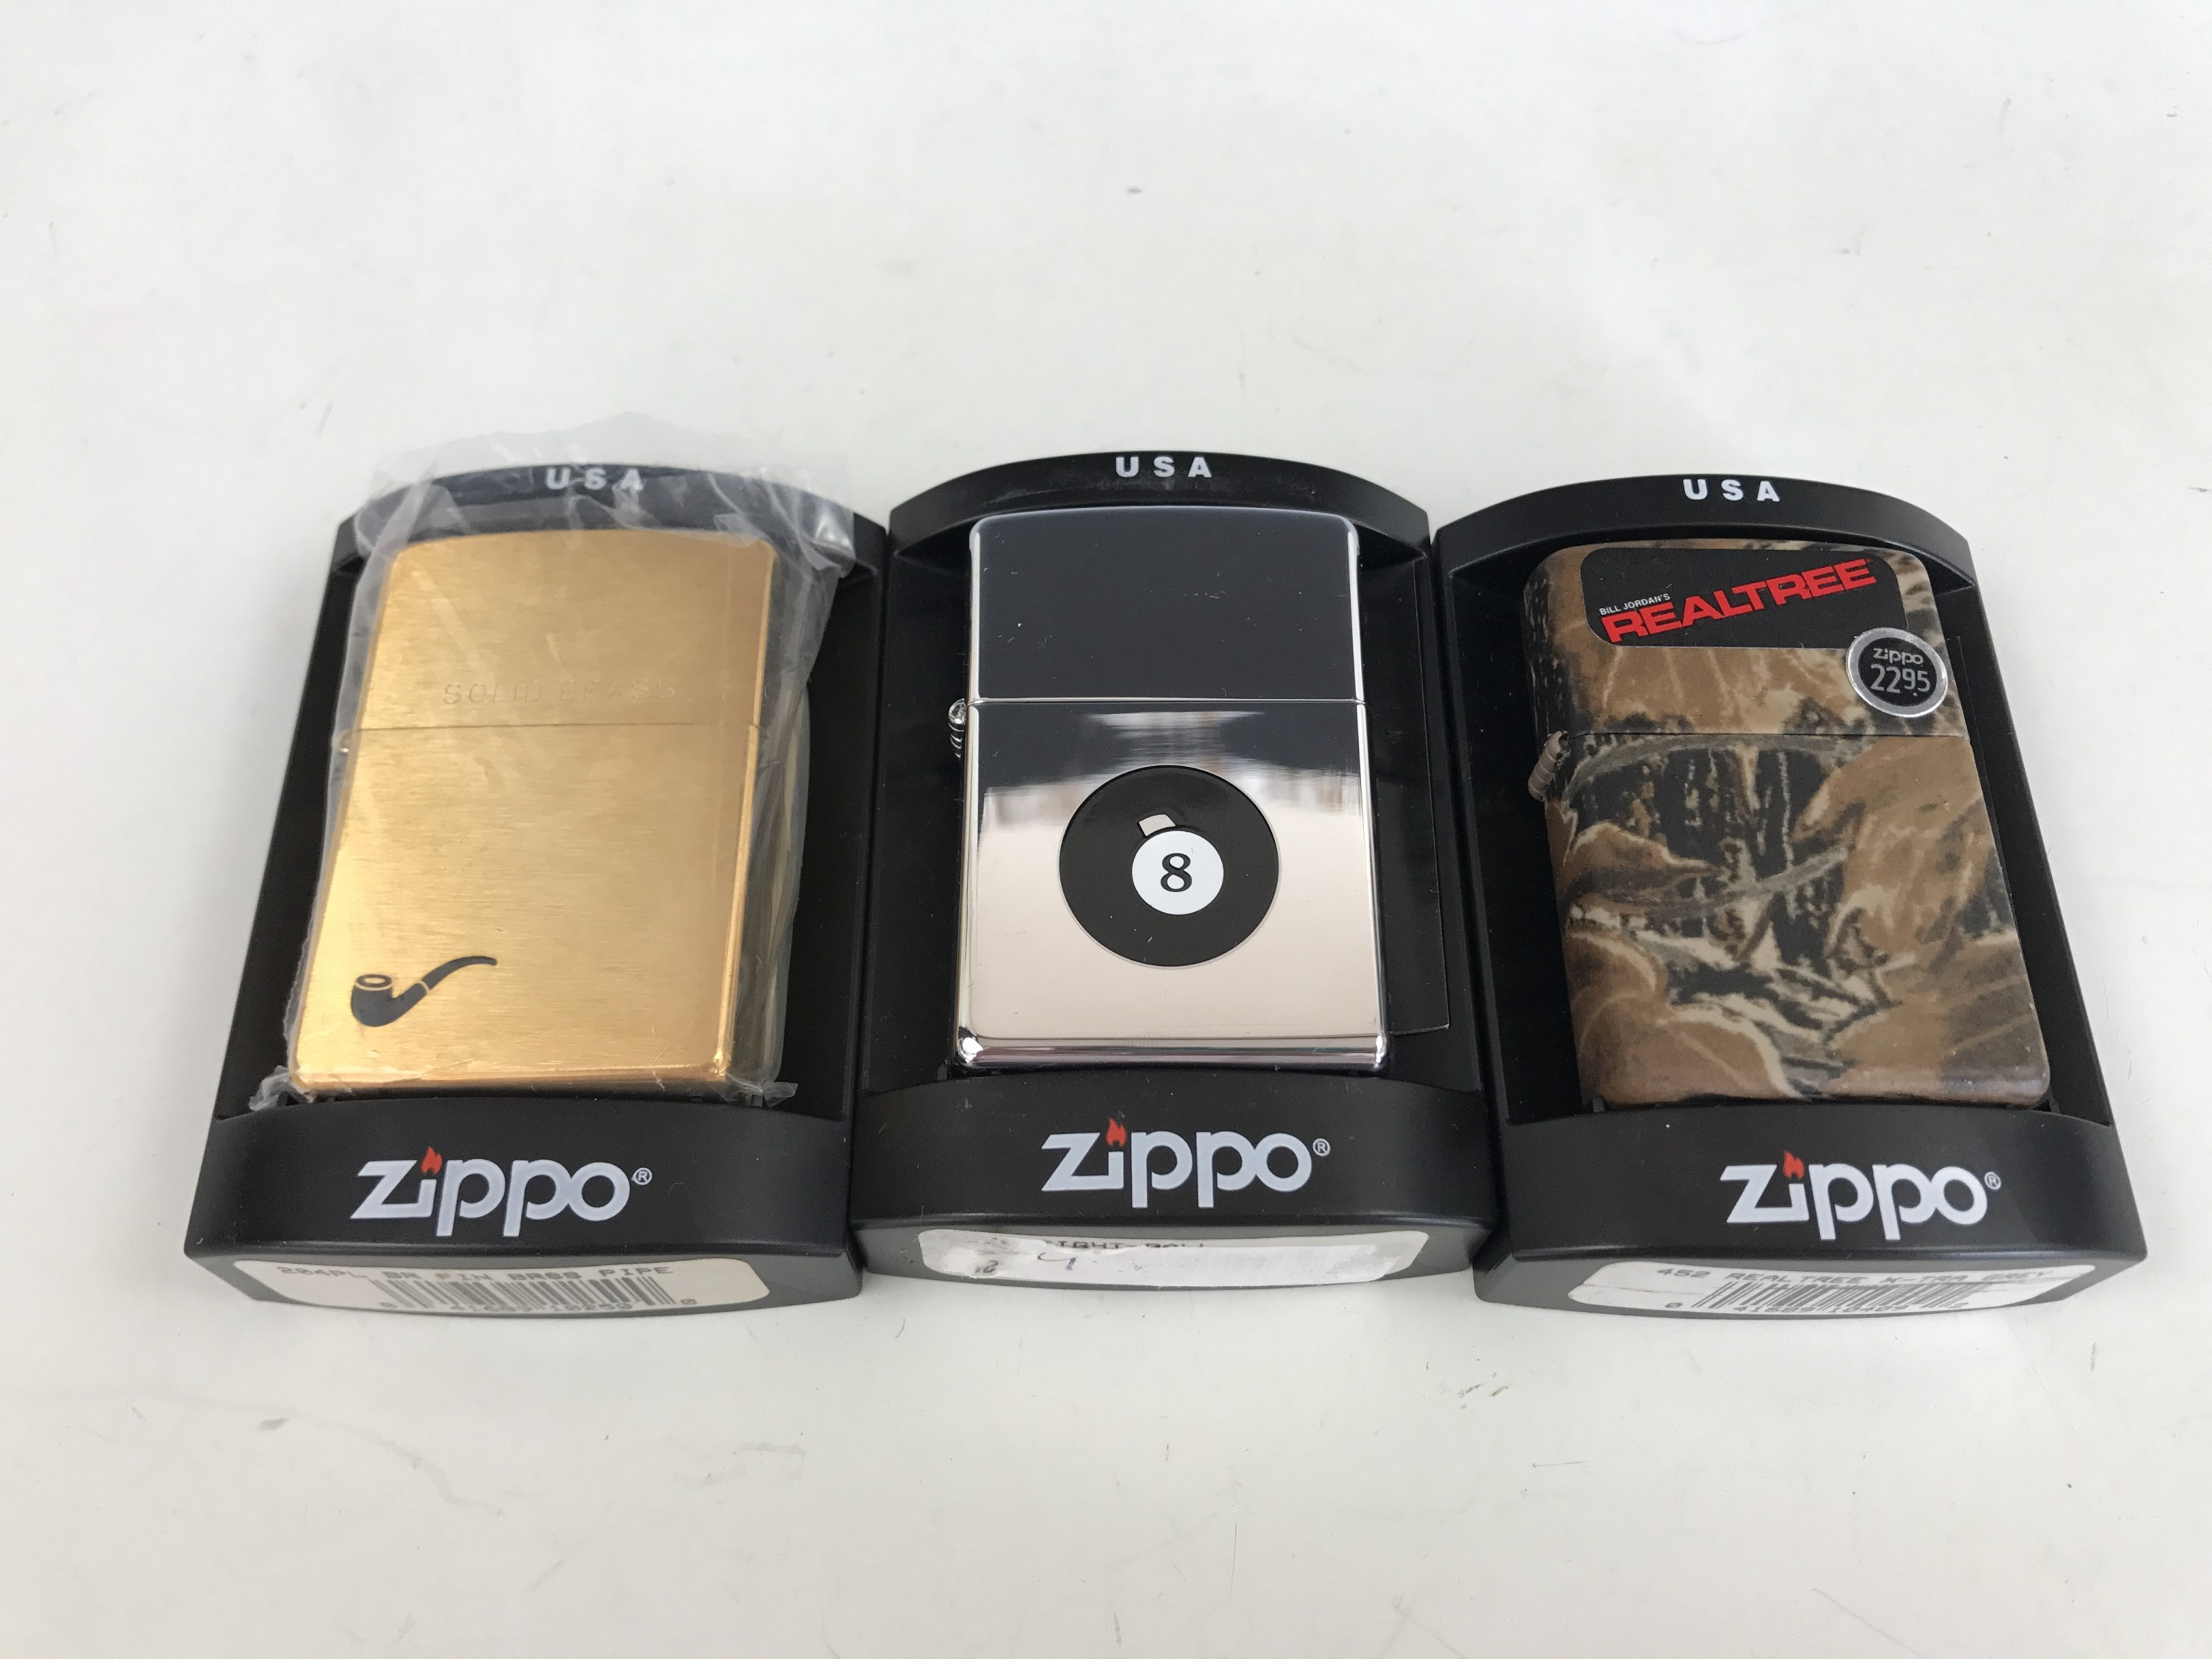 Lot 24 - Three cased Zippo lighters, including No. 204PL BR FIN Brass Pipe, No. 452 Real Tree X-Tra Grey